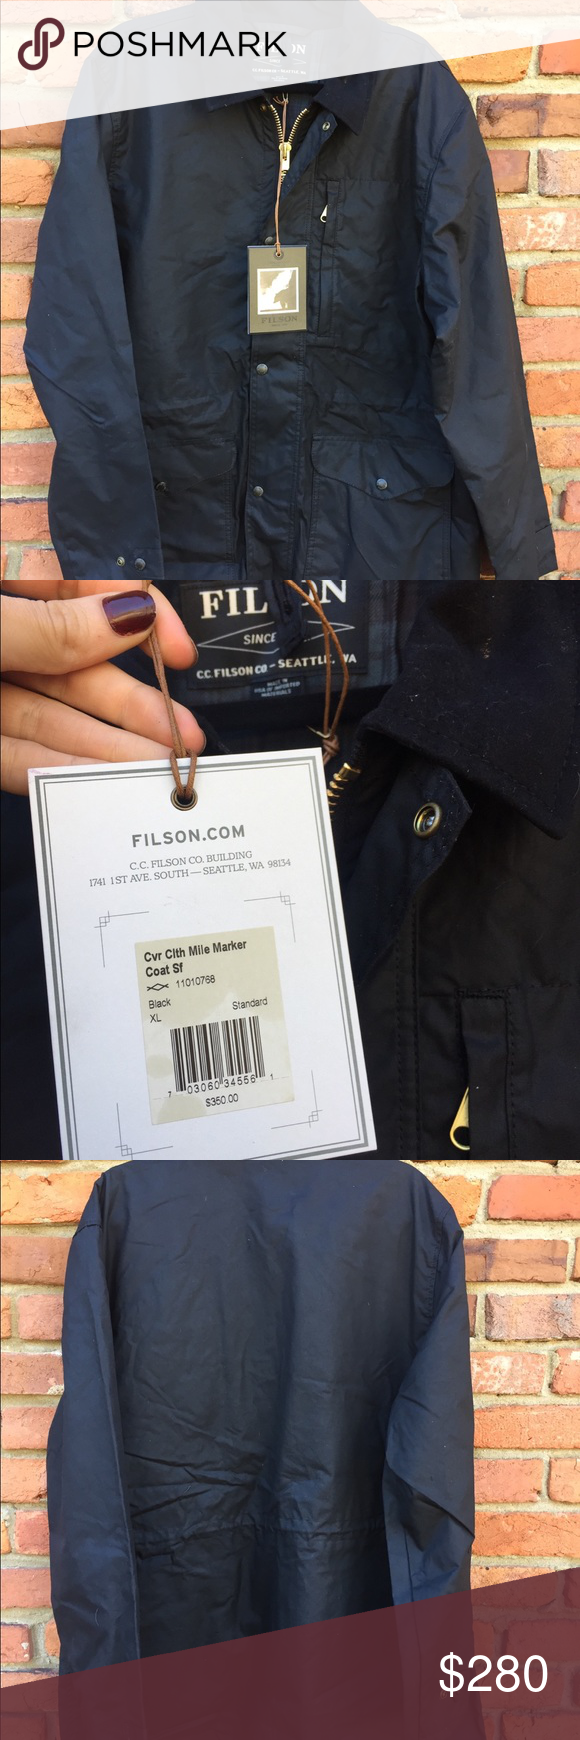 1881ac3fb NWT Filson Cover Cloth Mile Marker Coat men XL NEW Filson Cover ...